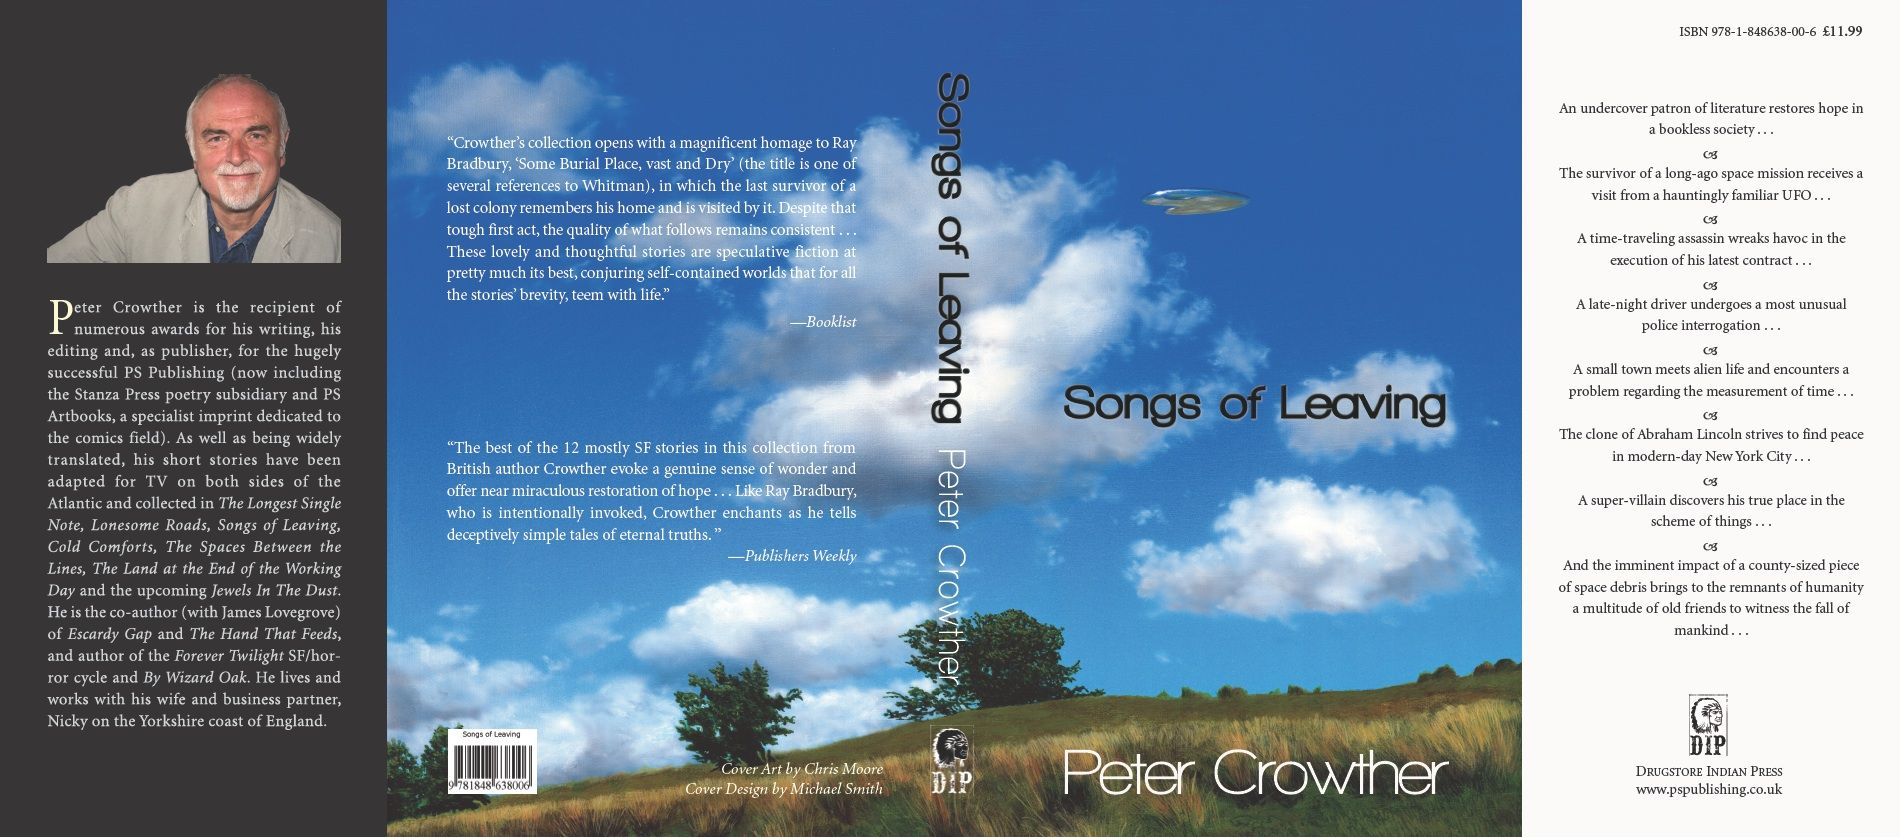 Songs of Leaving Trade Paperback by Peter Crowther